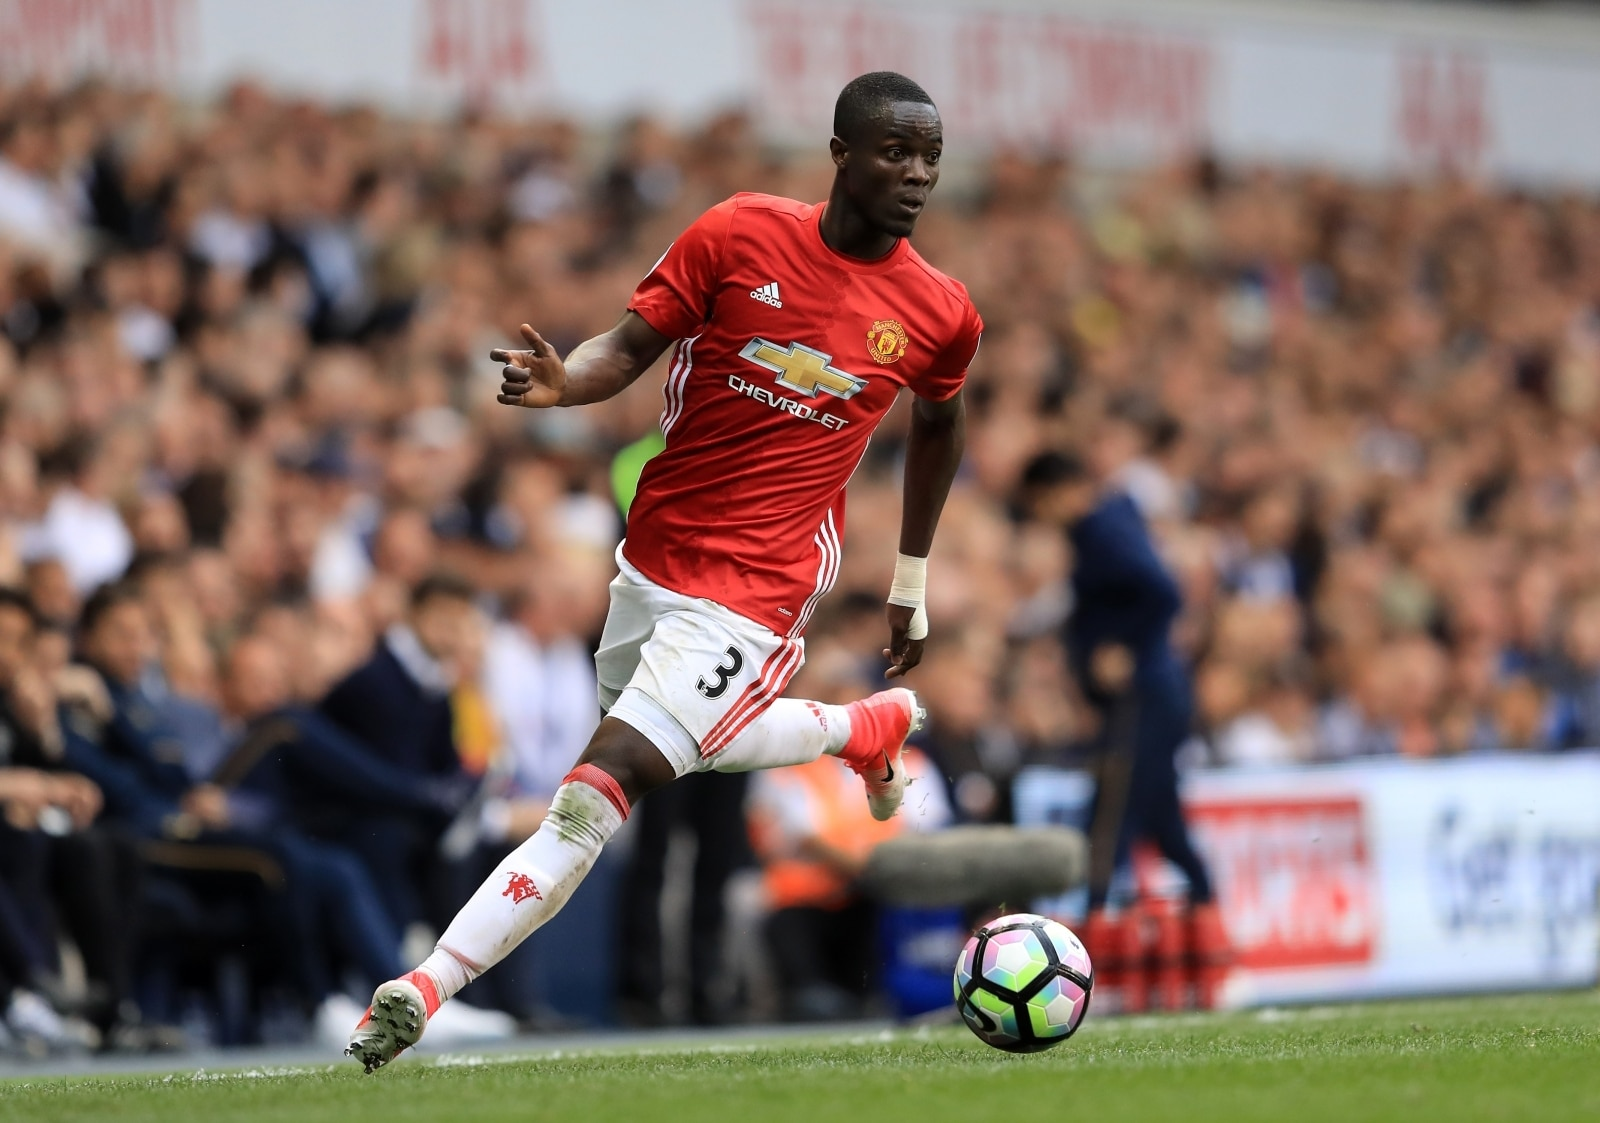 manchester-united-enormous-title-drops-transfer-bombshell-forward-of-europa-league-final.jpg